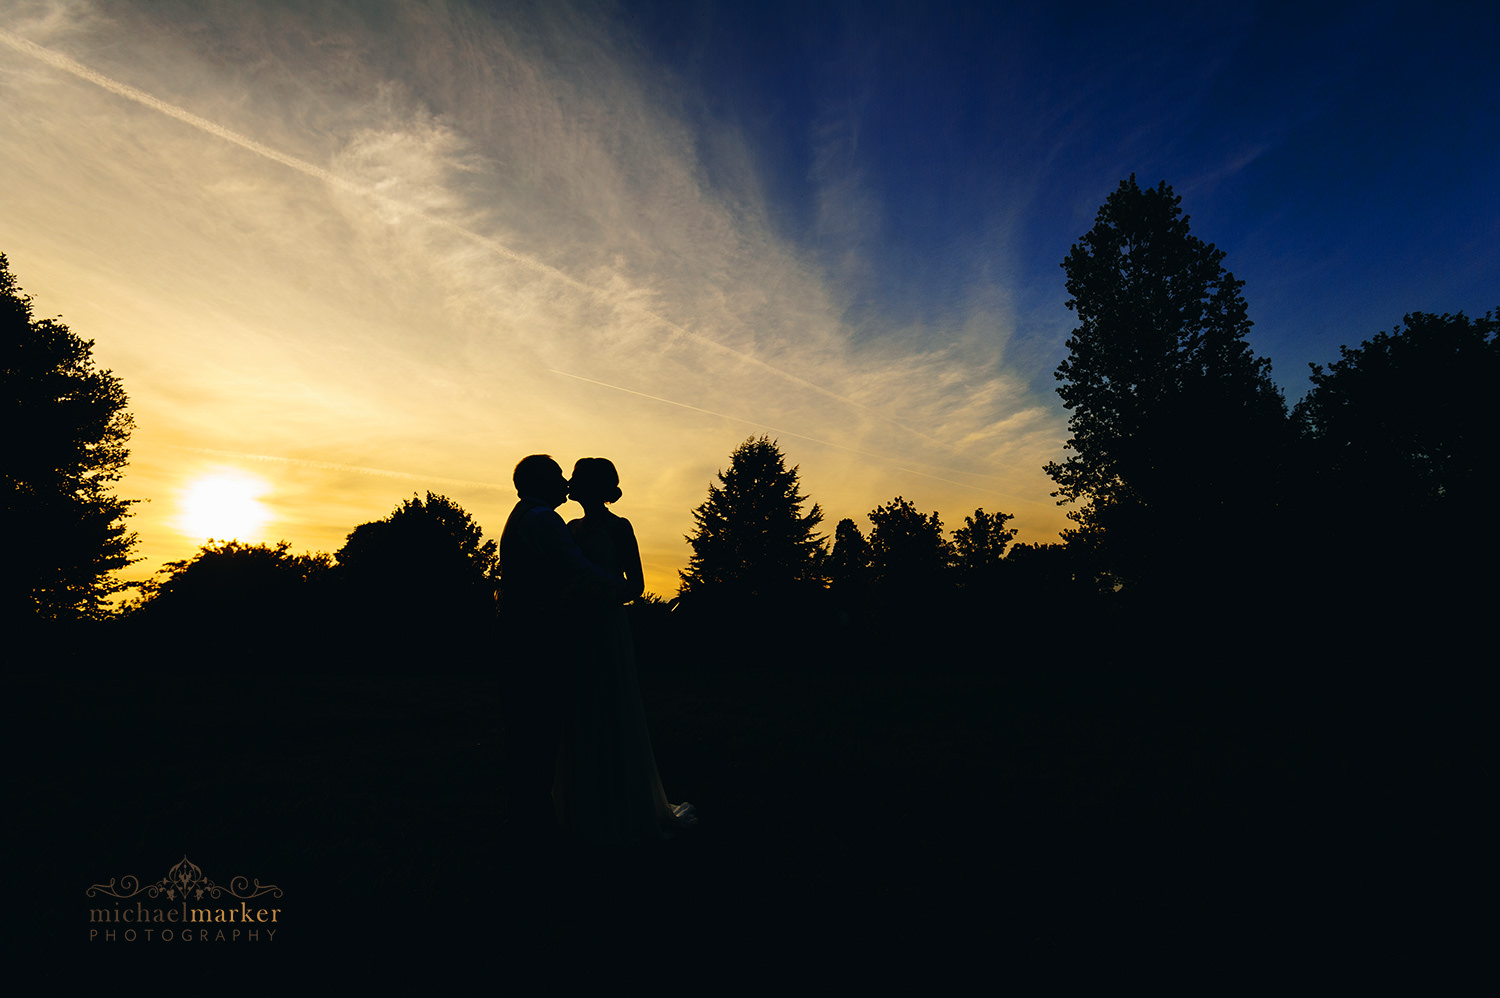 Silhouette of bide and groom kissing at Sunset at Buckinghamshire wedding.